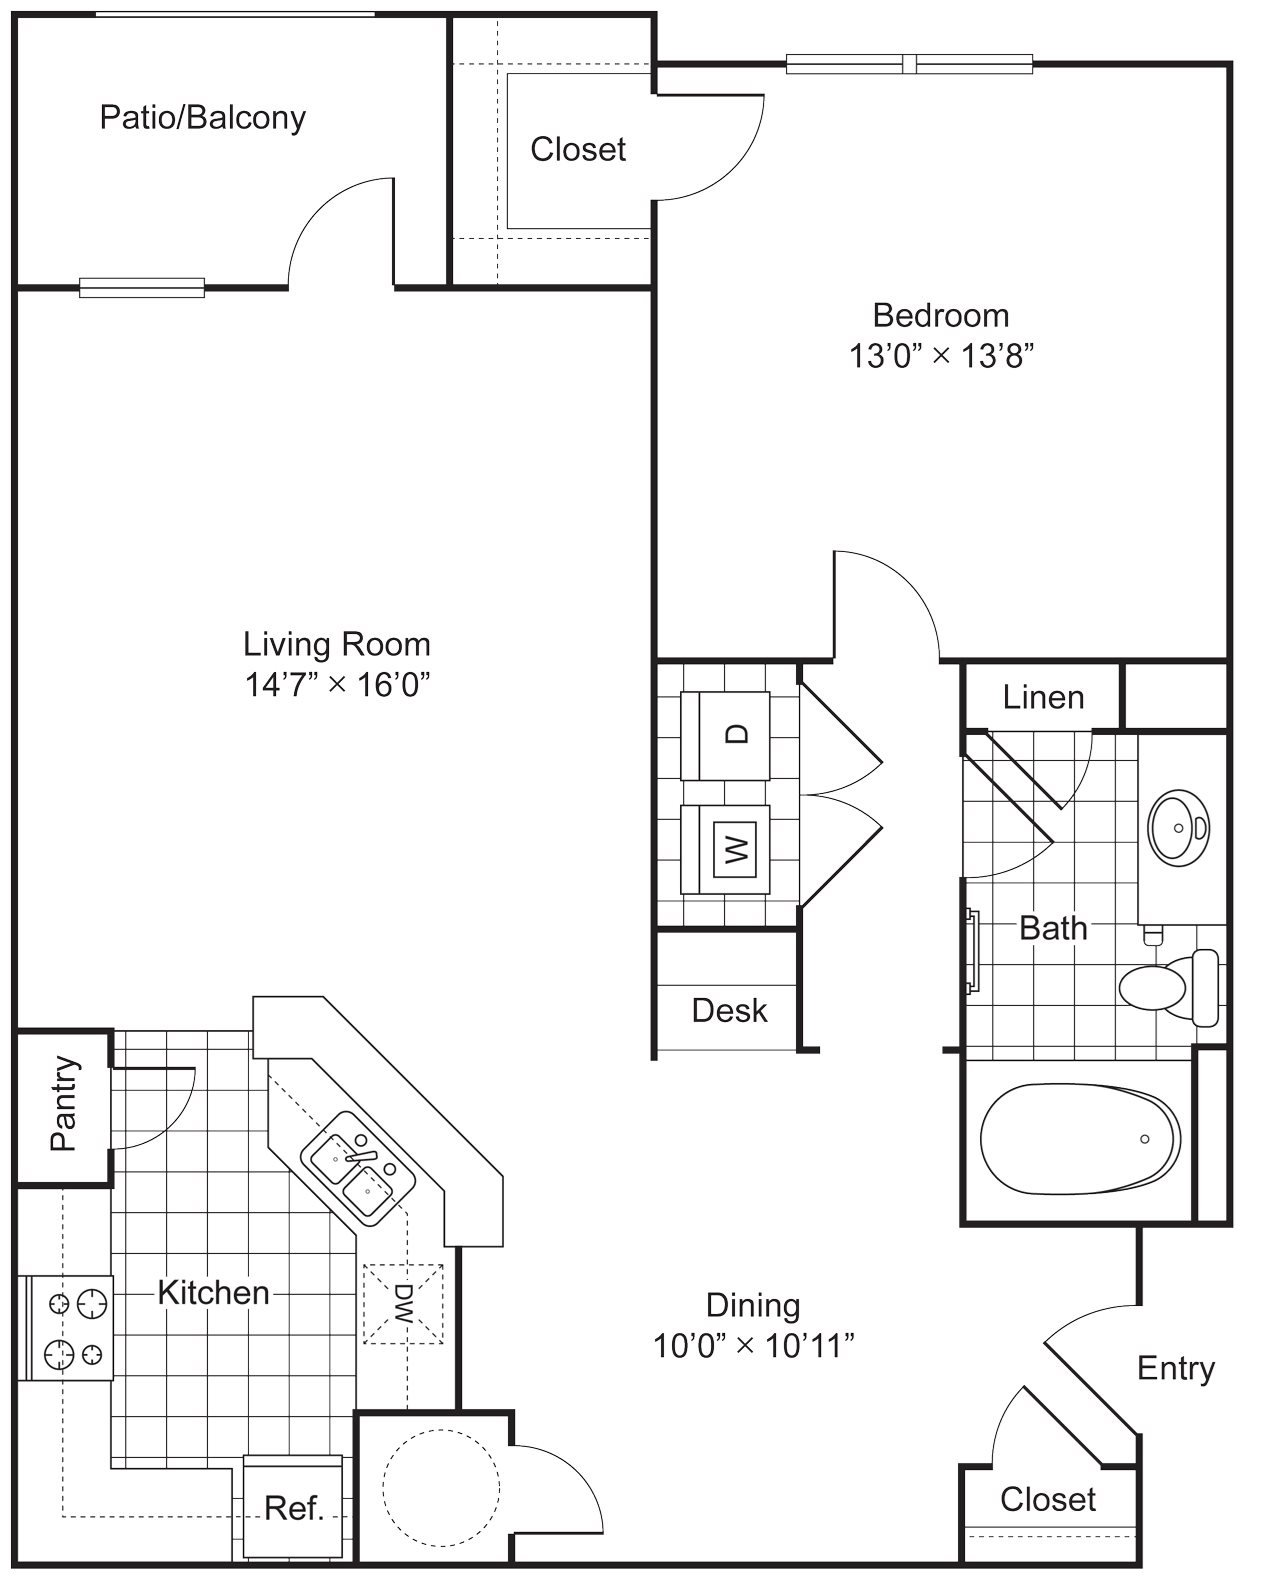 1 Bedroom 1 Bath 920 sqft (A2) Floor Plan 2